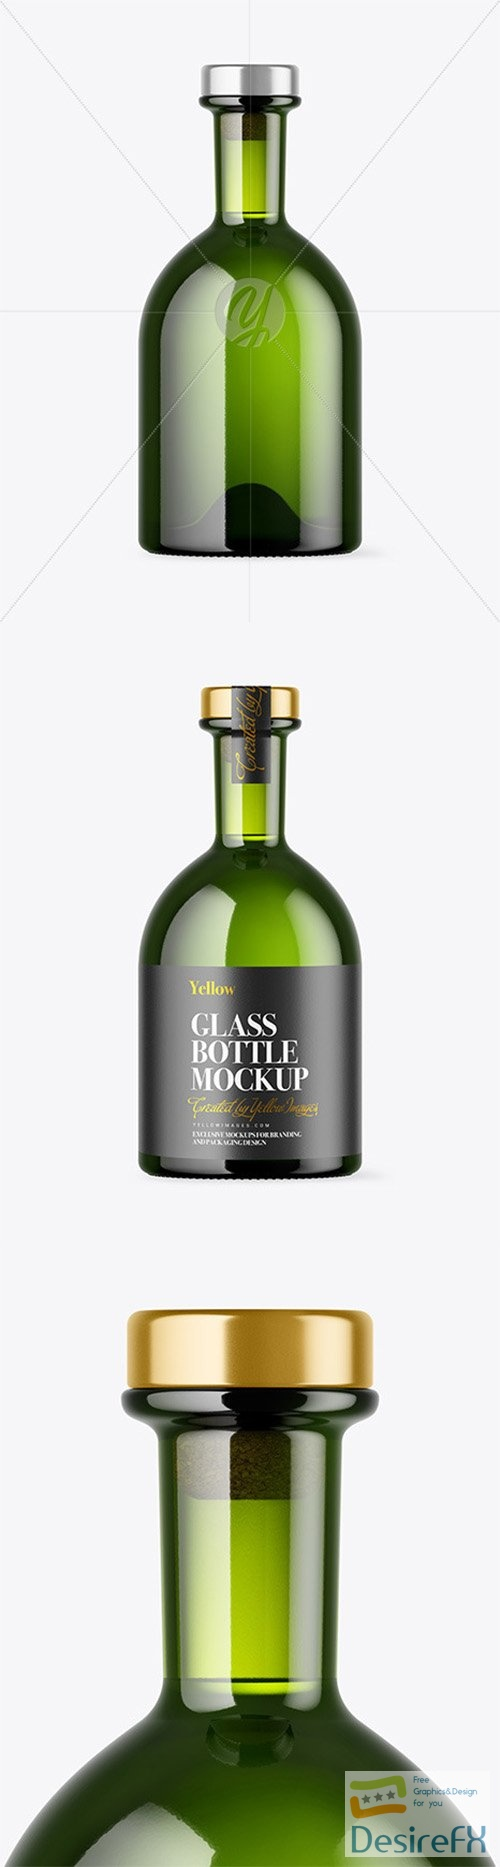 Green Glass Bottle with Wooden Cap Mockup 79679 TIF